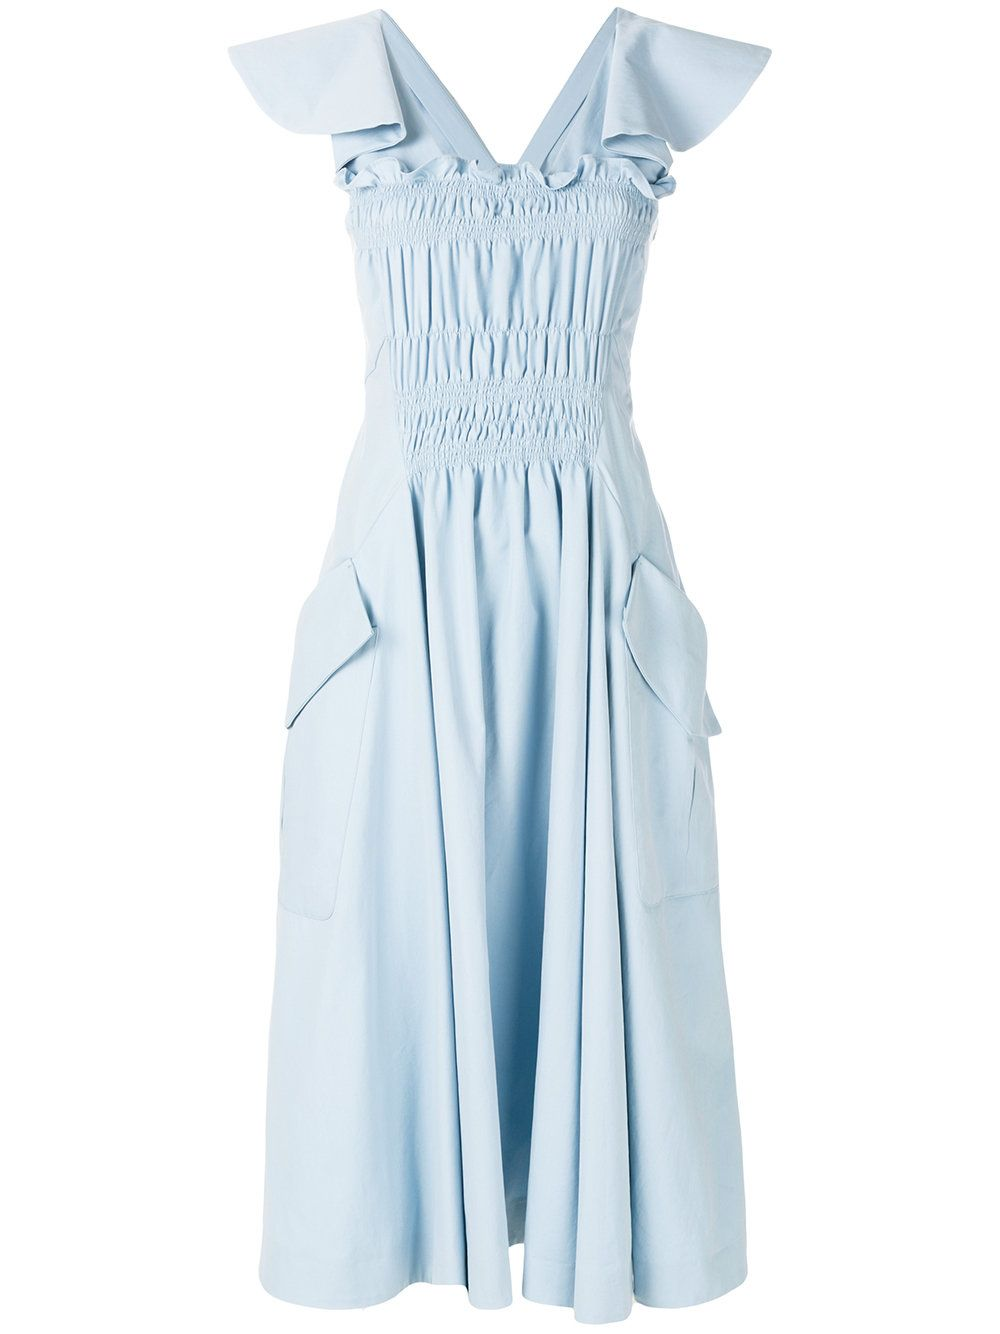 Clearance Latest Collections Fashion Style Cheap Online front ruffle midi dress - Blue Carven Free Shipping Cheap Online Sale Authentic Low Shipping cltSpH